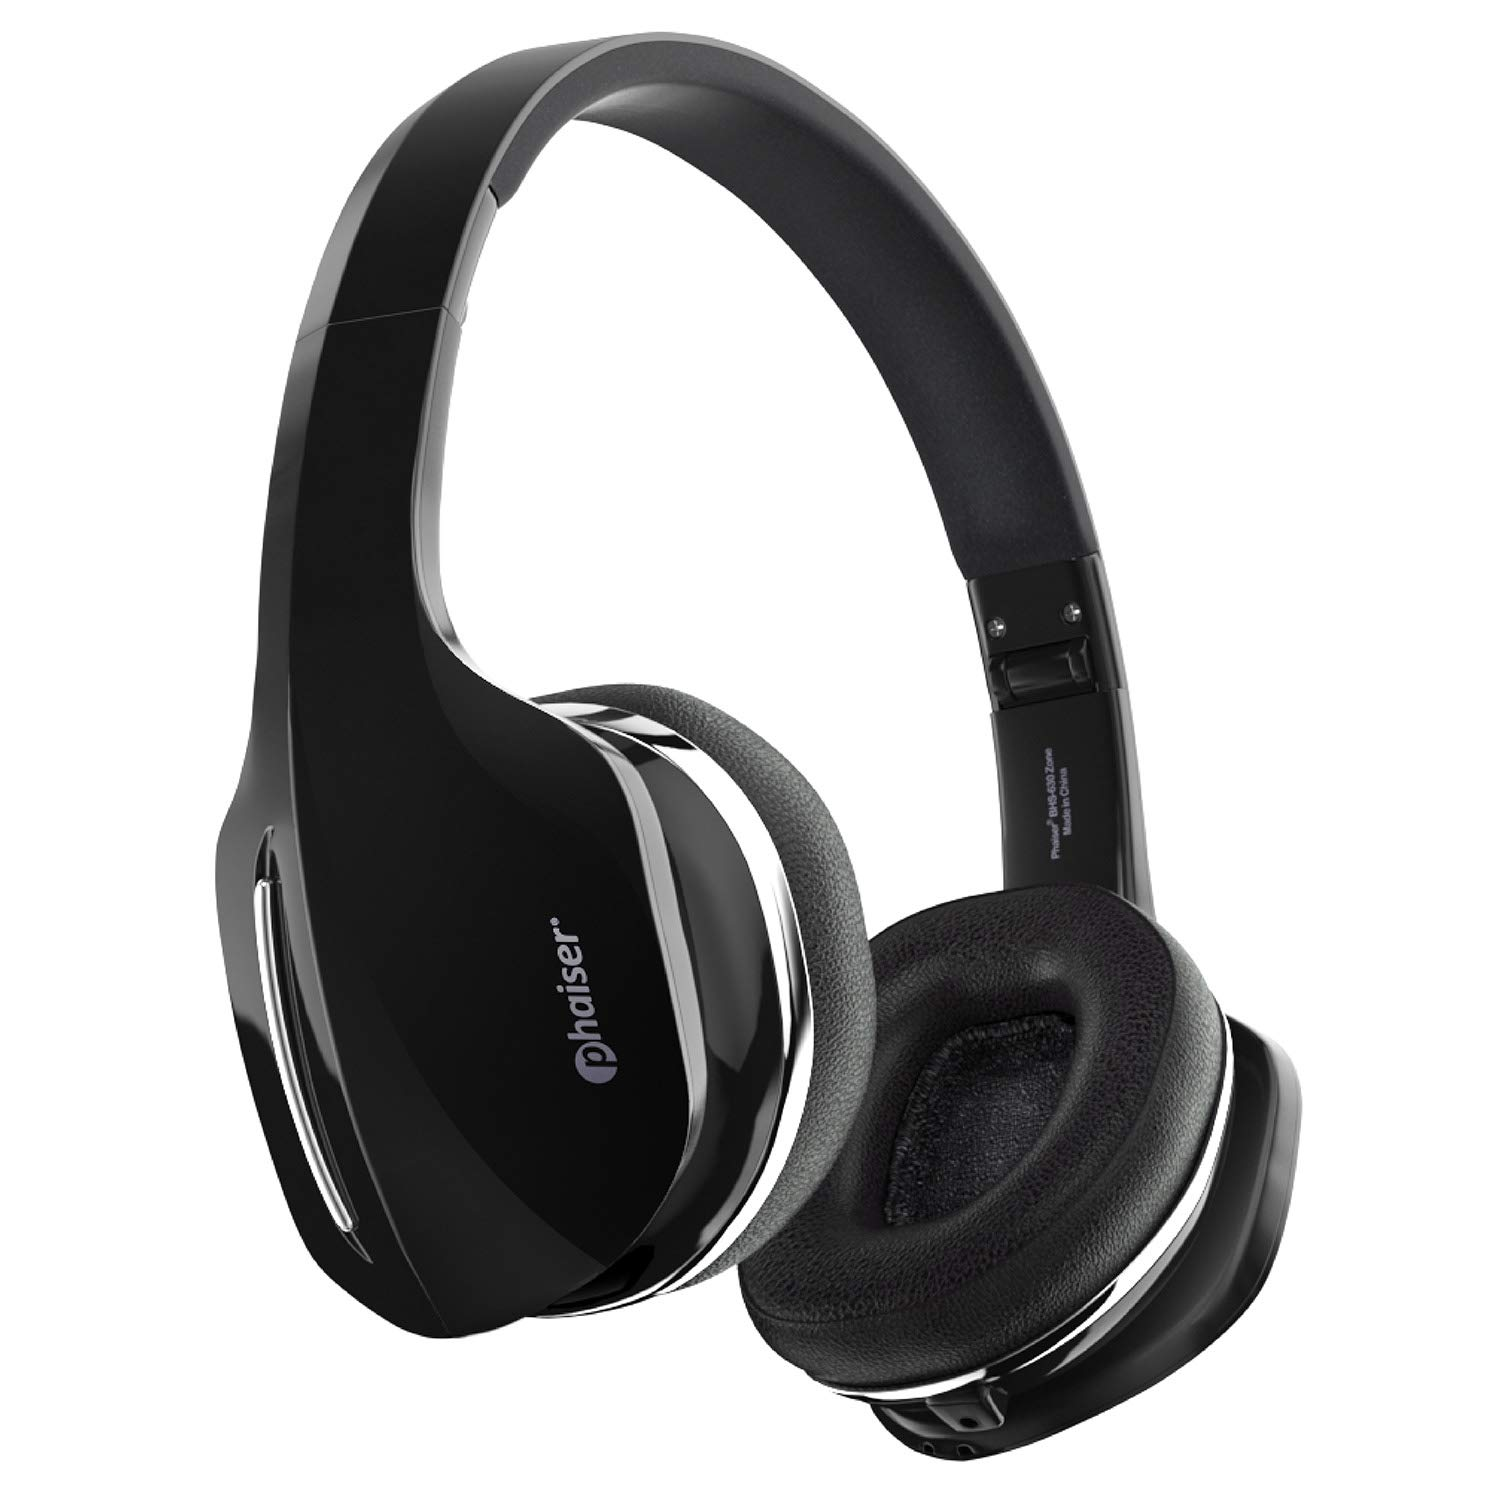 8ee41f763b3 Phaiser BHS-630 Bluetooth Headphones HiFi Stereo Wireless On Ear Deep Bass  Headset w/Noise Canceling Microphone 15 Hour Playtime Comfortable Earpads  for ...